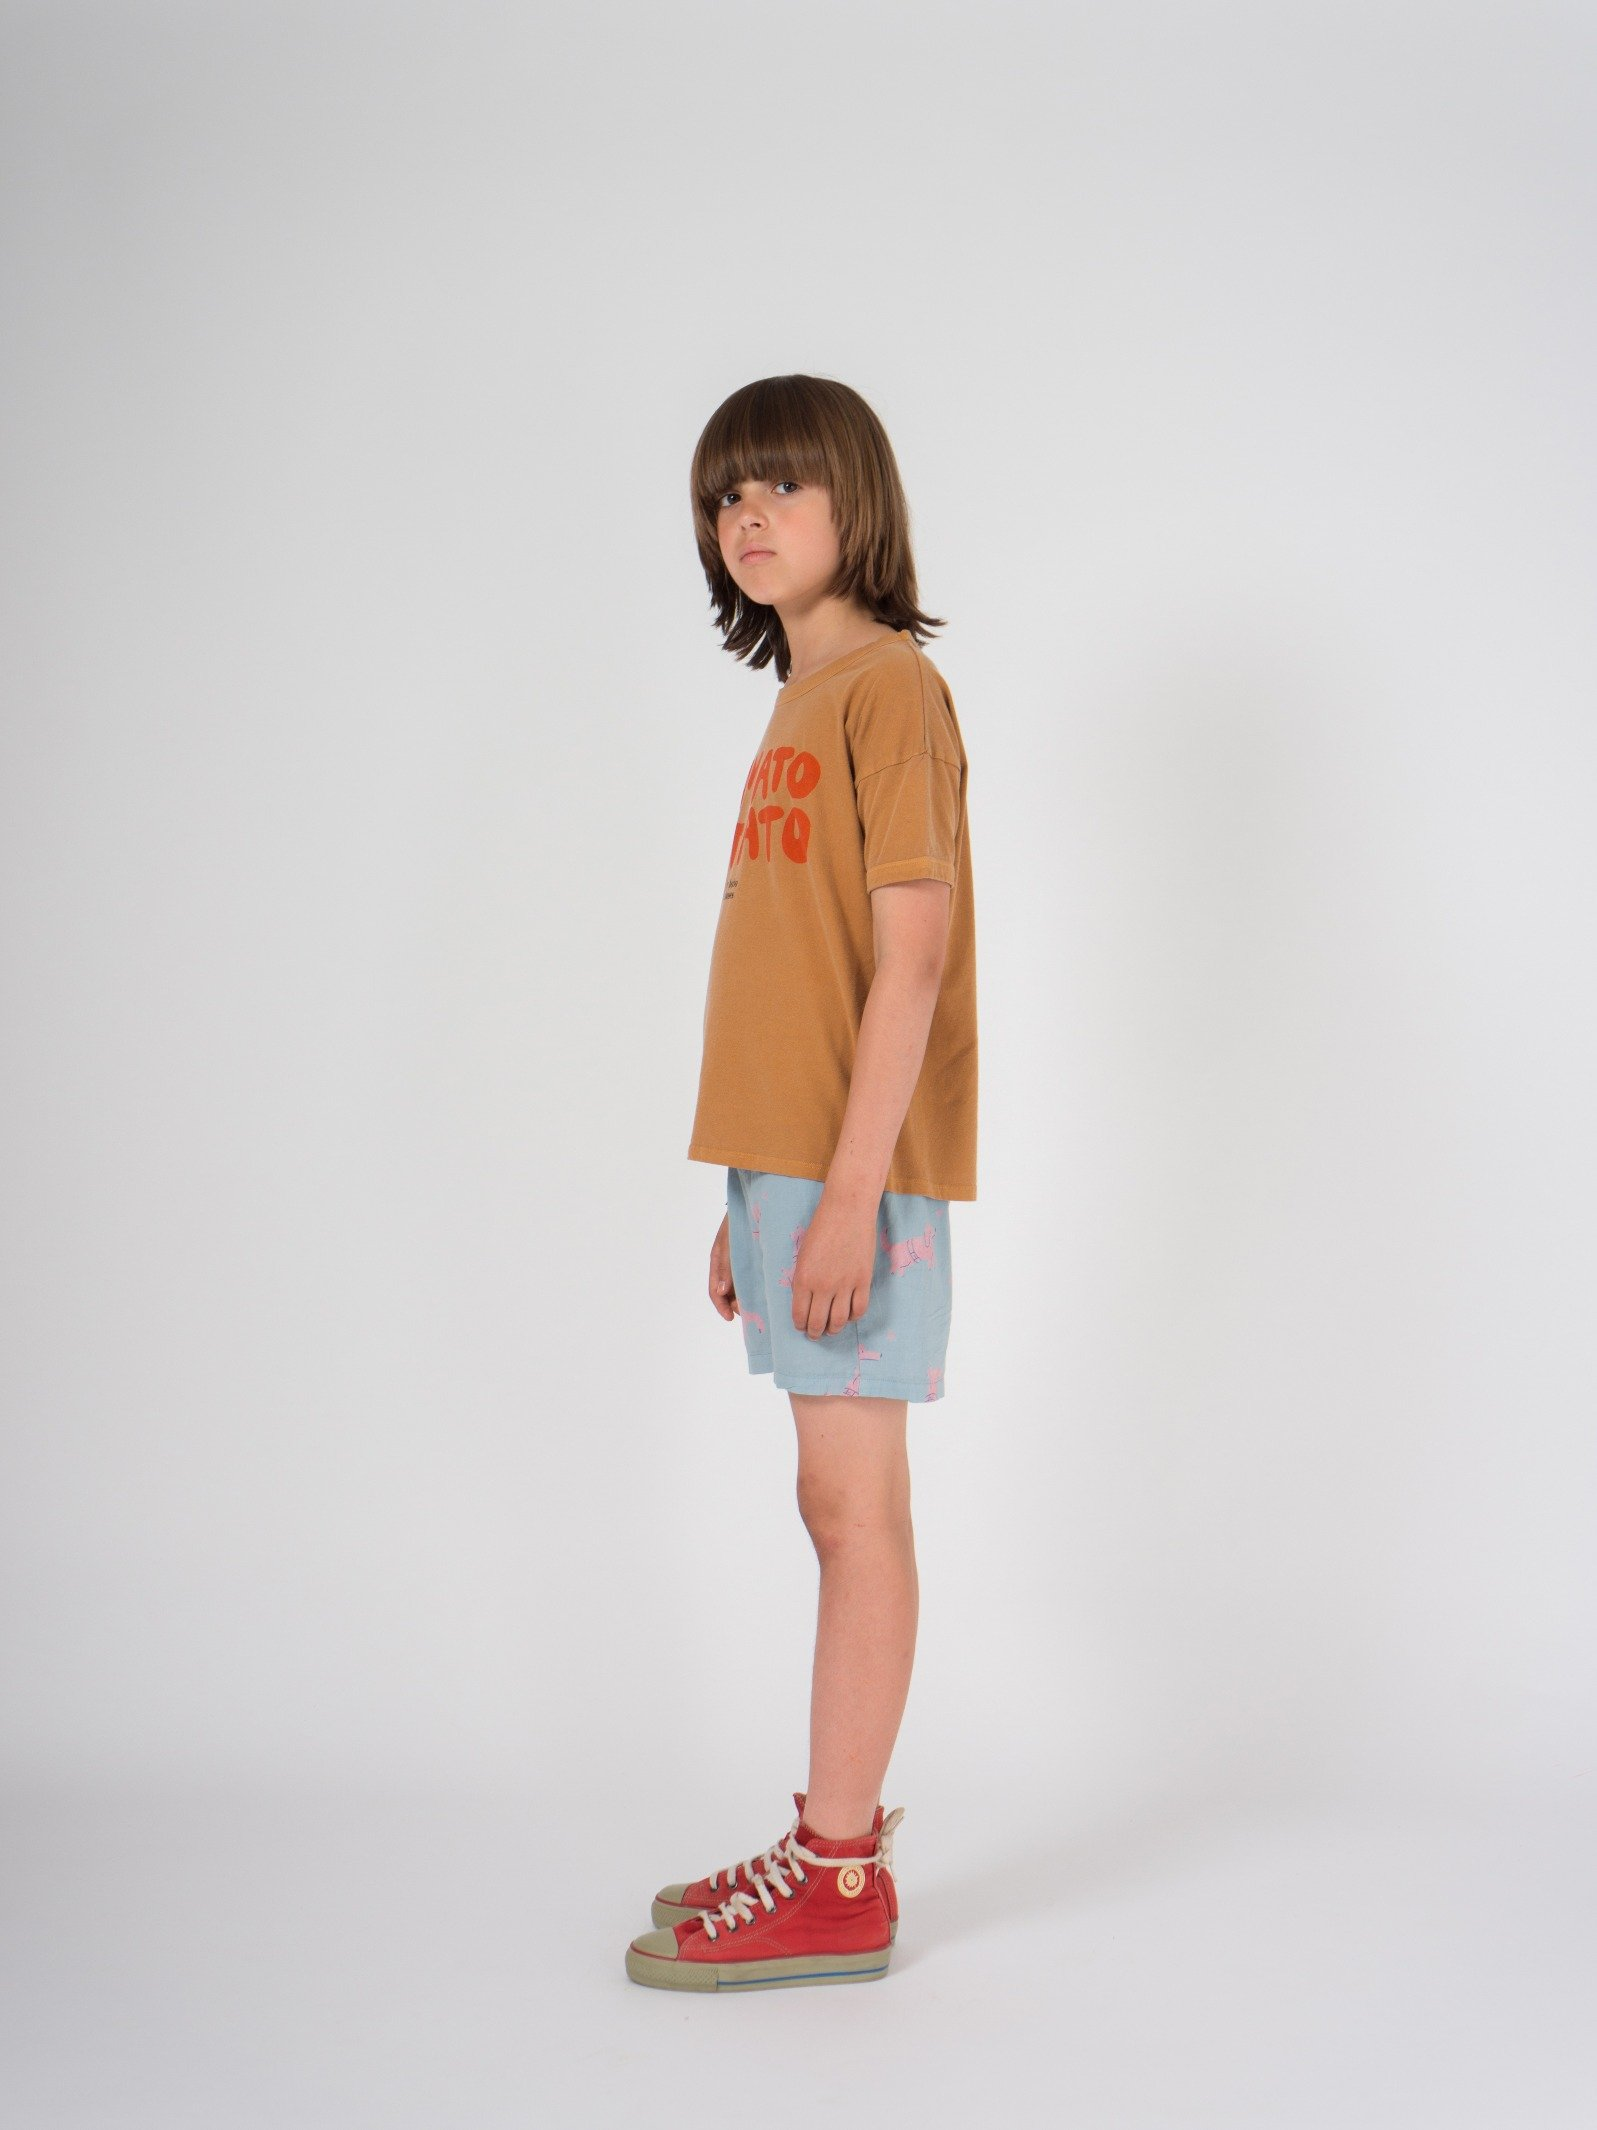 Kid Tomato Potato Short Sleeve T-Shirt Look